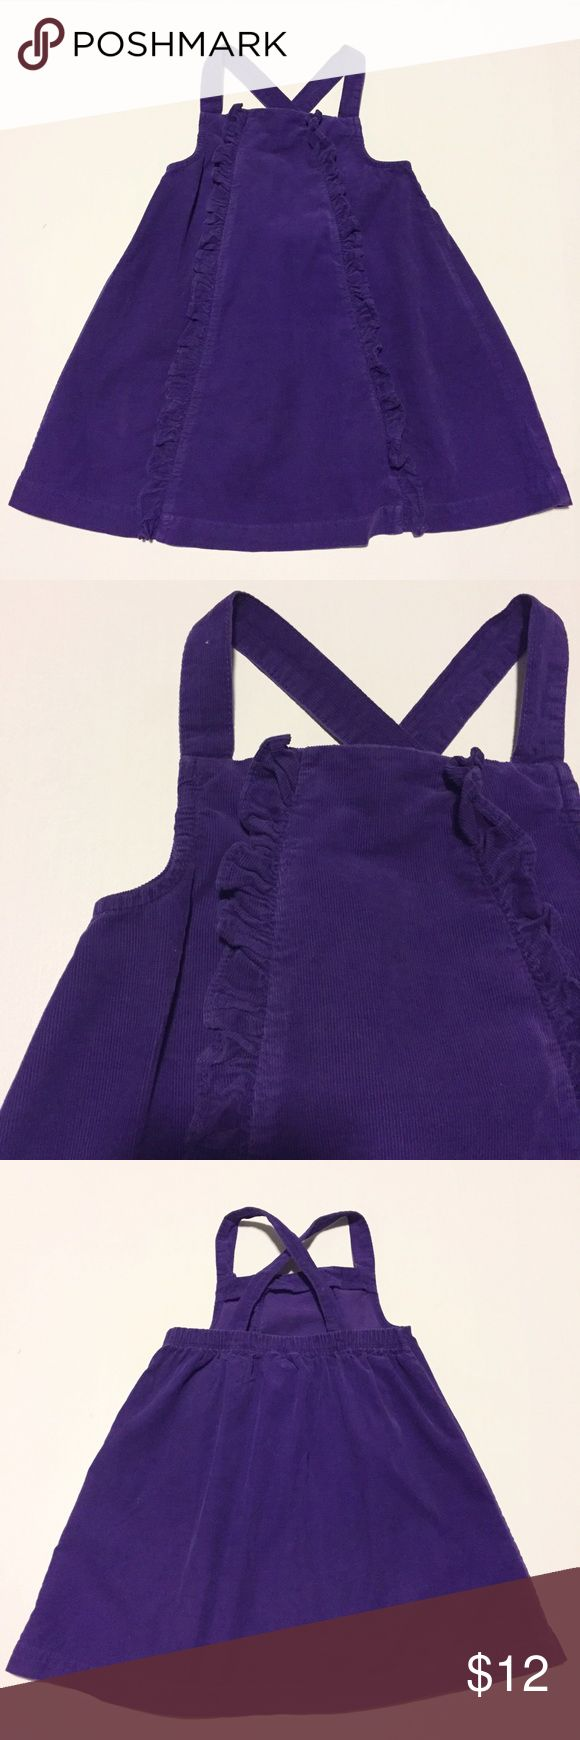 Chaps Purple Jumper Size 4 Chaps Purple Jumper  Size 4/4T Classic purple Corduroy jumper dress.  Ruffles from too to bottom hem. Straps are adjustable (2 button holes) and can be crossed as shown or left straight for additional length. EUC  Smoke-free, pup-friendly home. Cross-posted Chaps Dresses Casual